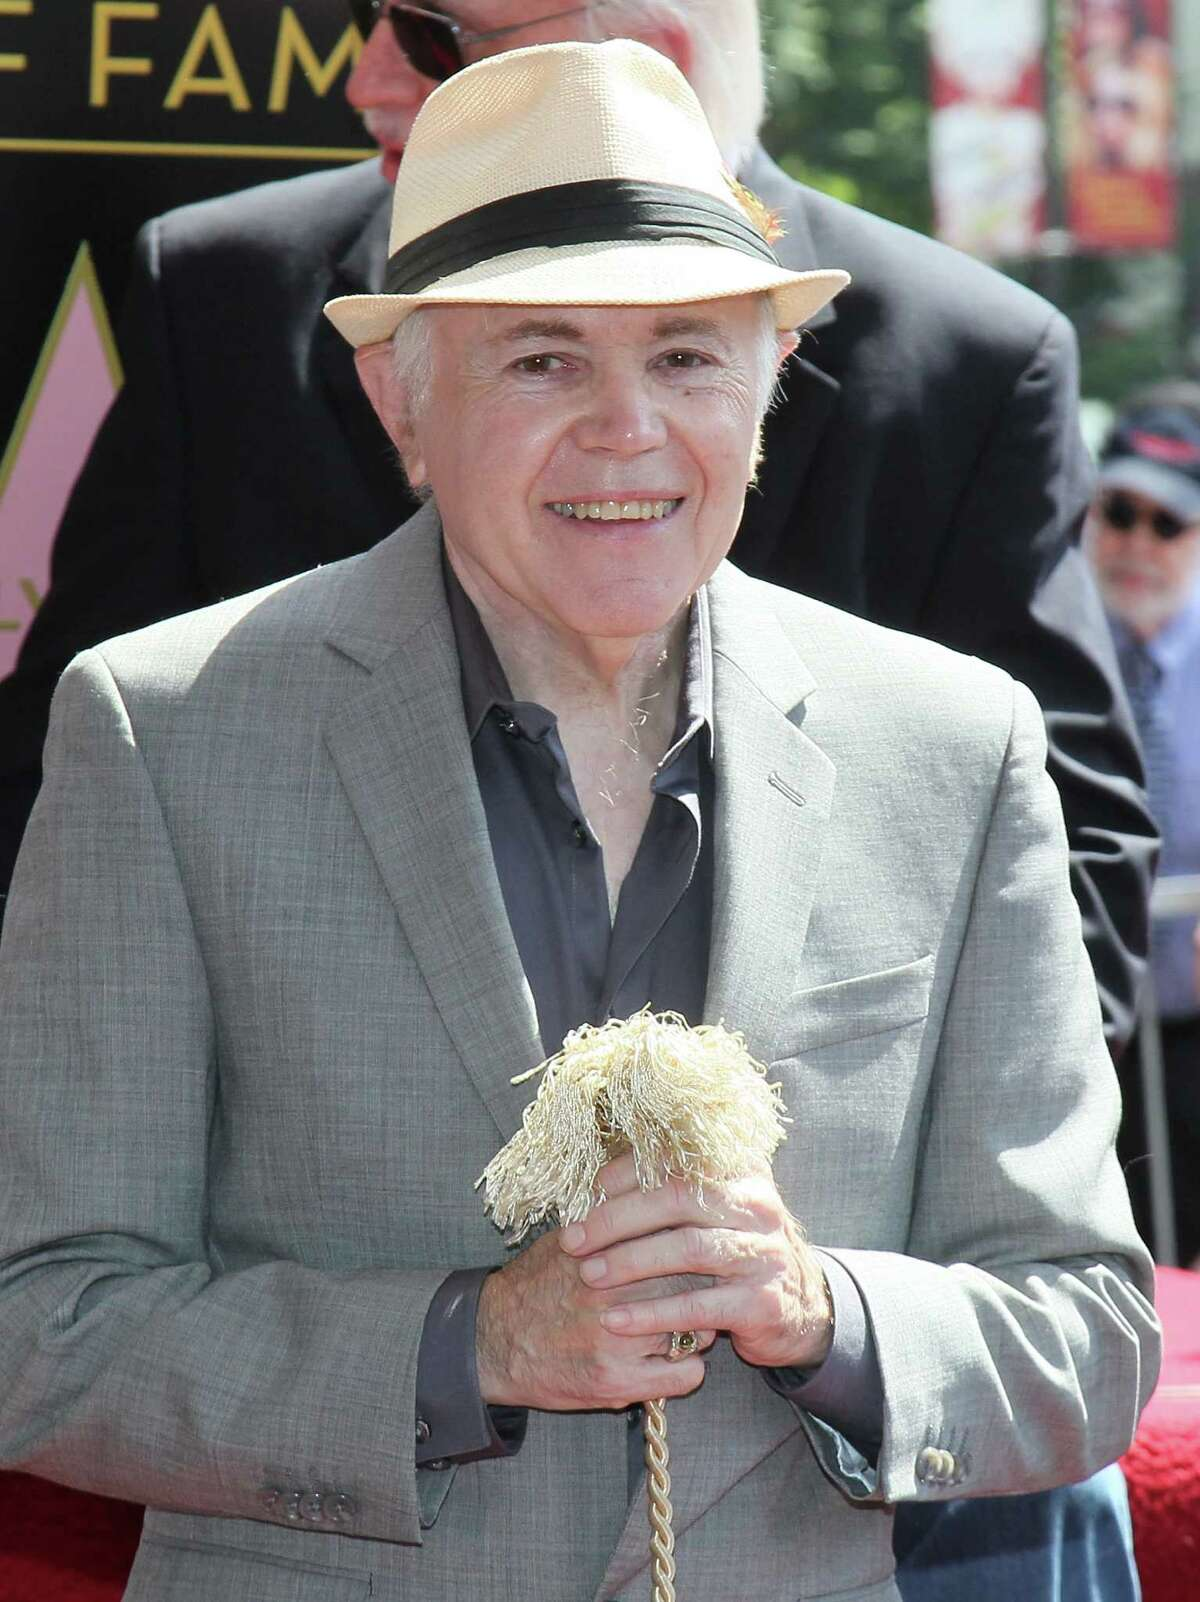 Actor Walter Koenig attends his being honored with a star on the Hollywood Walk of Fame on September 10, 2012 in Hollywood, California. He is scheduled to make an appearance at Celebrity Fan Fest in San Antonio.